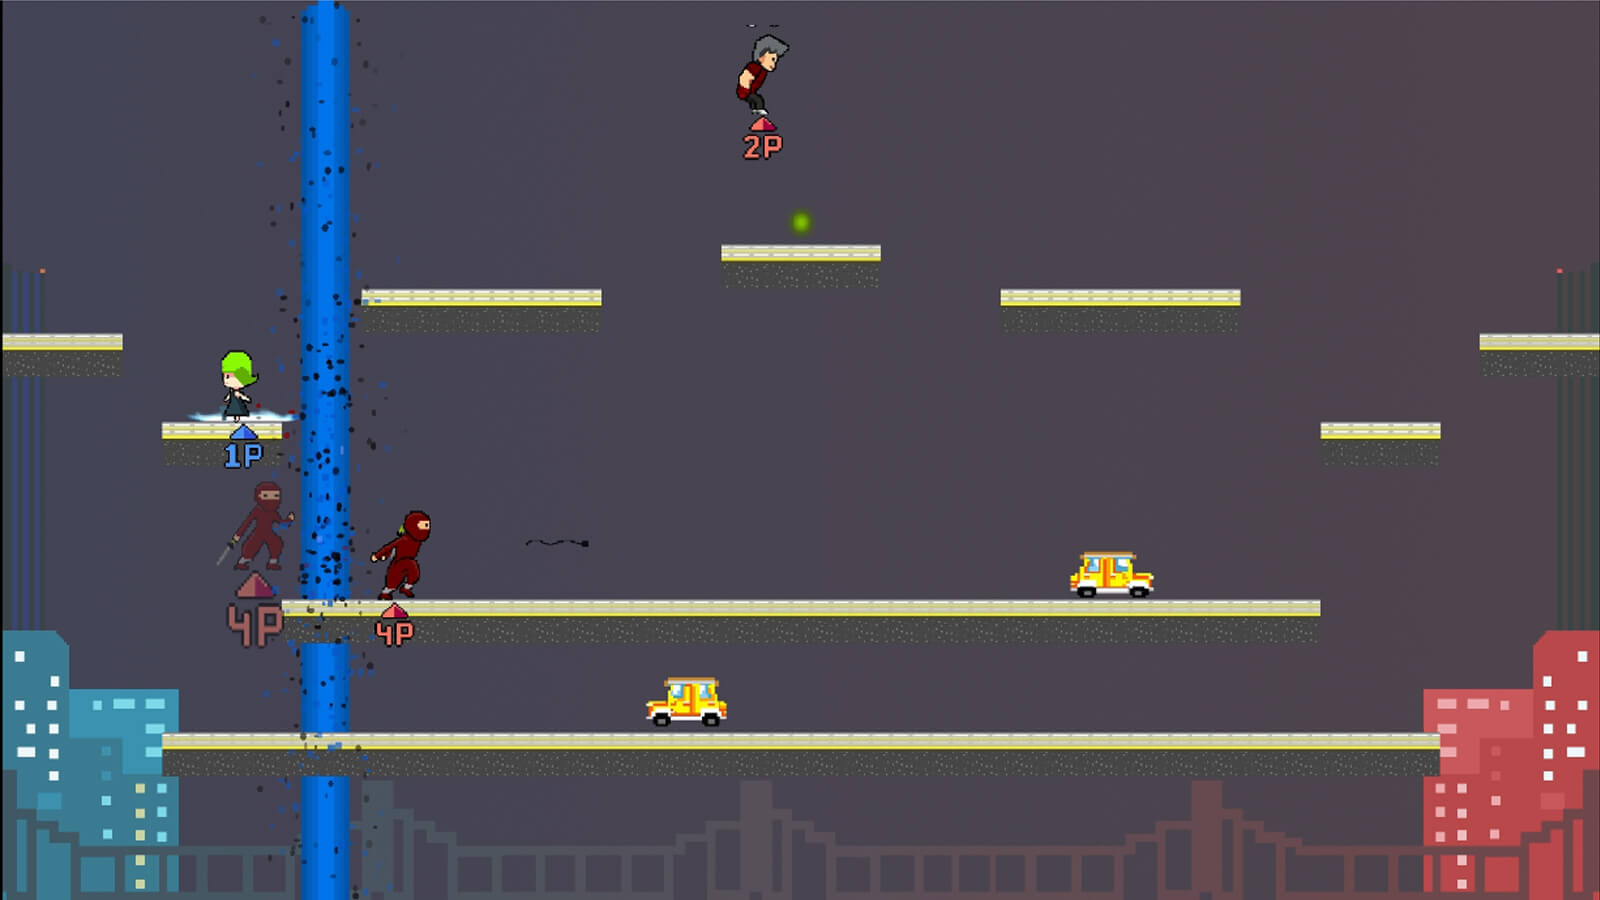 Four players jump around urban-style platforms on a level with a cityscape background